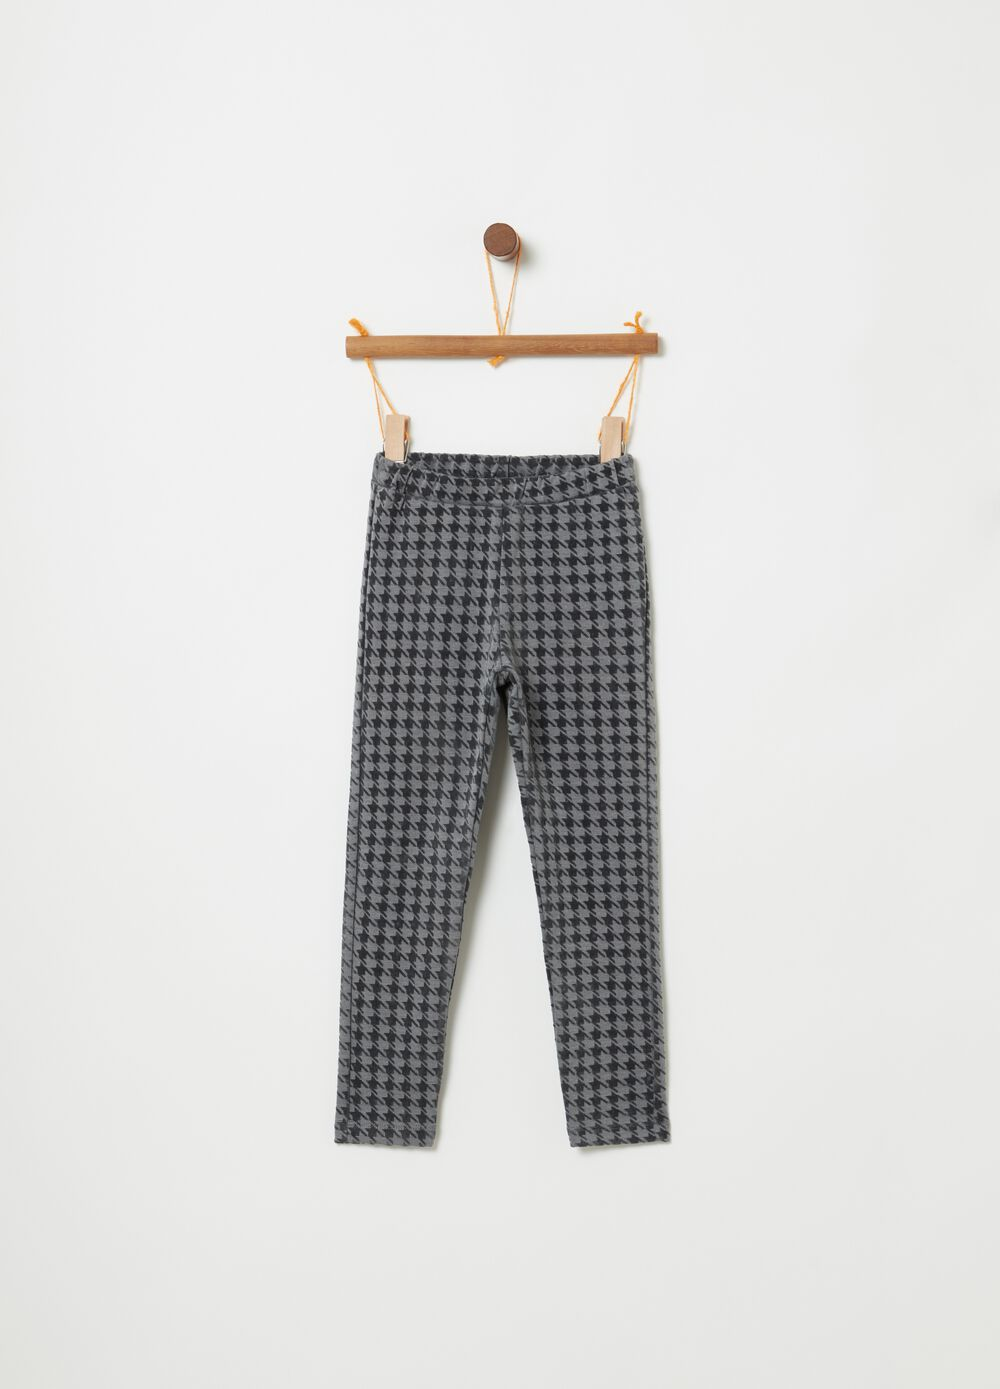 Stretch leggings with hounds' tooth print